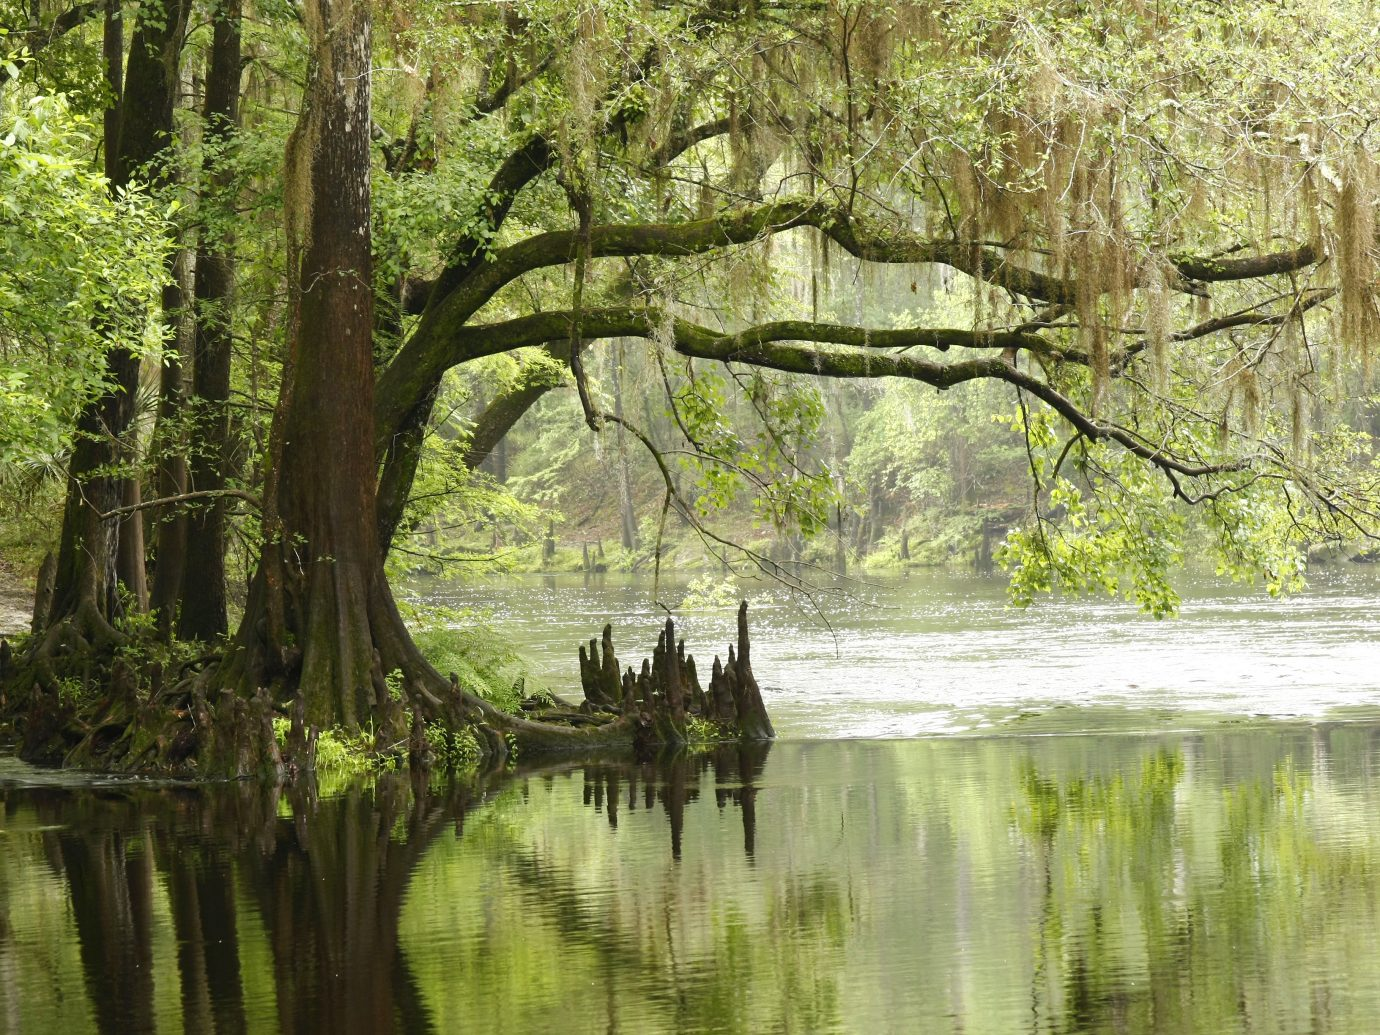 A Large Bald Cypress overhanging the Santa Fe River in Florida